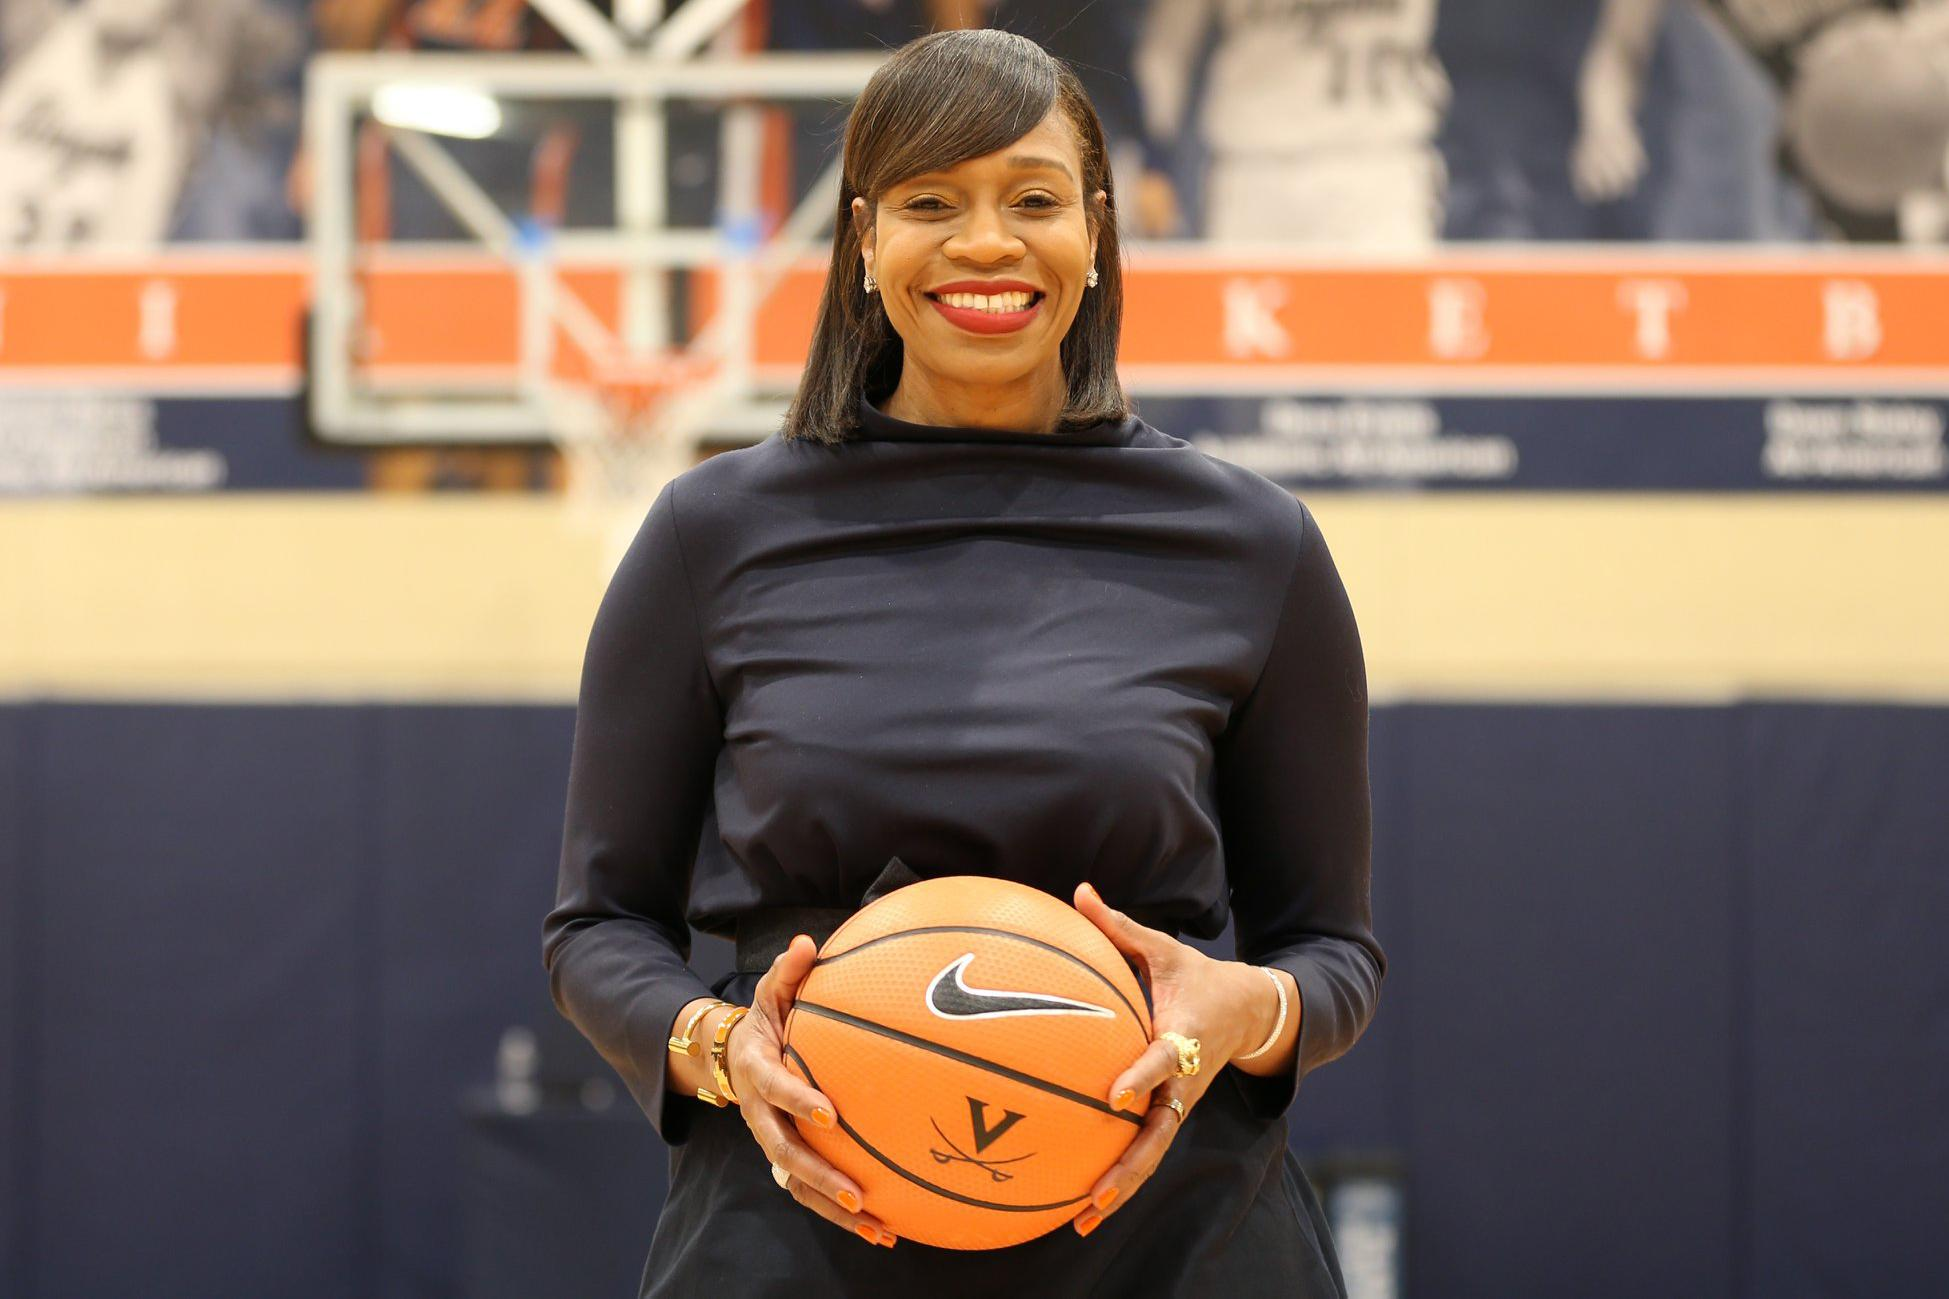 UVA's hiring of Tina Thompson earned acclaim from all across the world of women's basketball. (Photos by Matt Riley, UVA Athletics)